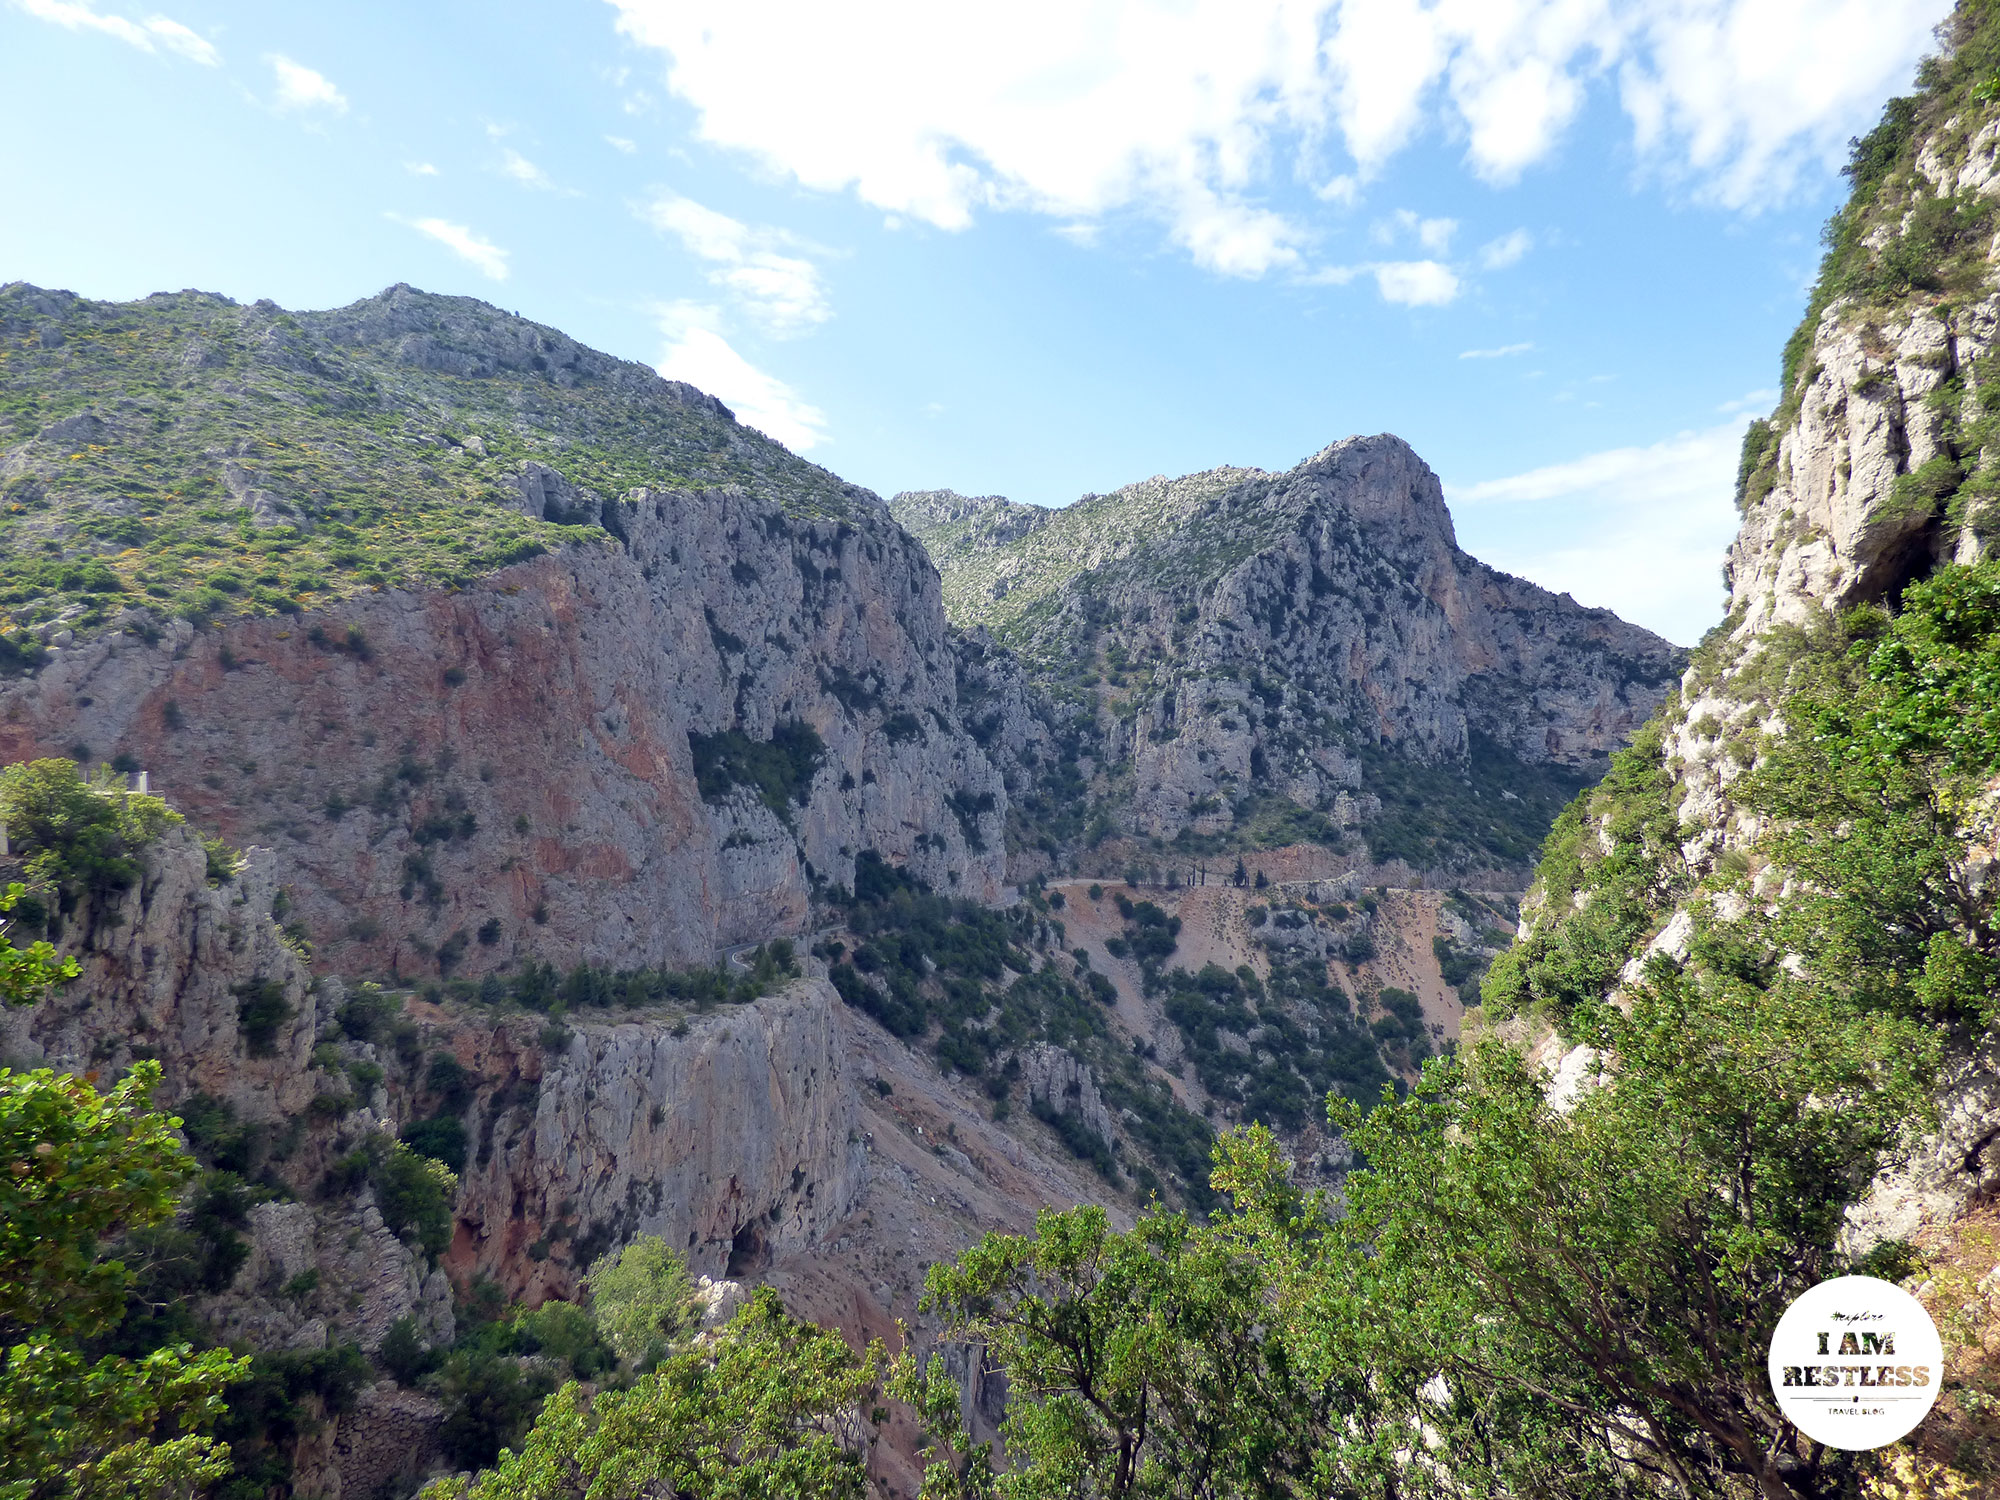 What-to-See-in-Greece-The-Scenic-Lookout-at-BellEkklisia-Agia-Paraskevi-Εκκλησία-Αγία-Παρασκευή---5.jpg